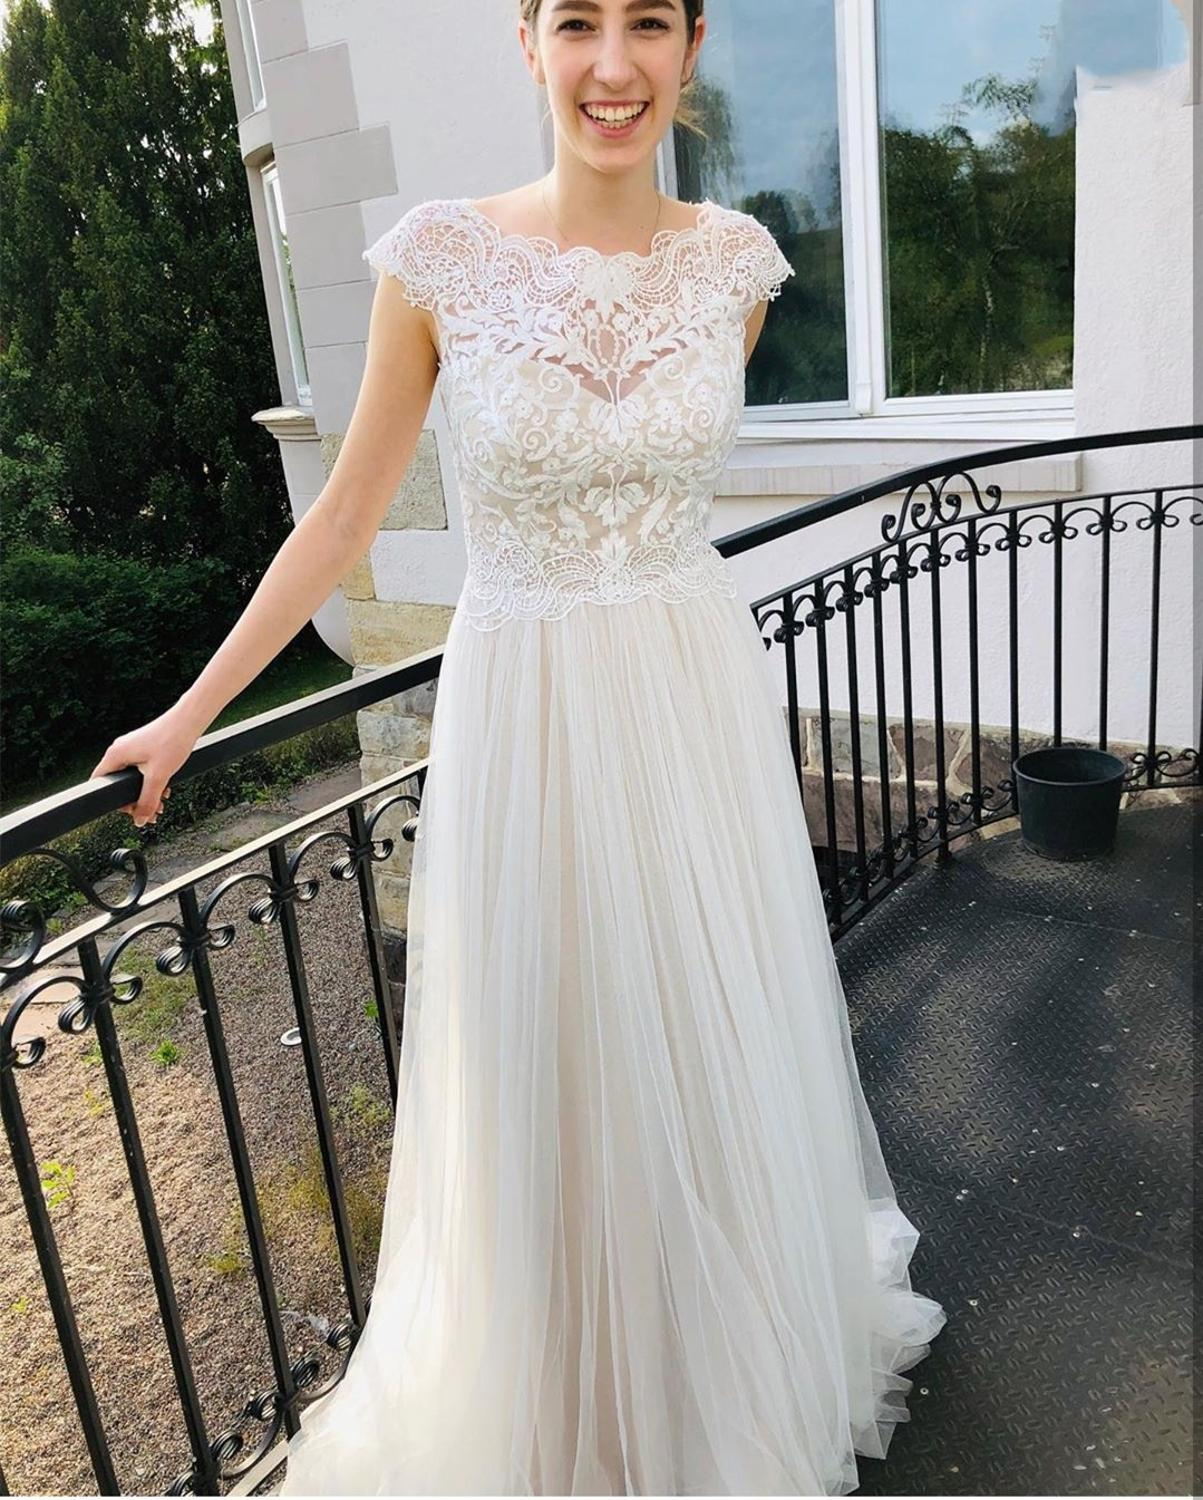 2020 A-line Wedding Dress Boho Beach Rustic Sale Scoop Chiffon Cap Sleeve Pleat Bridal Gowns Vestidos De Novia Corte Trompeta